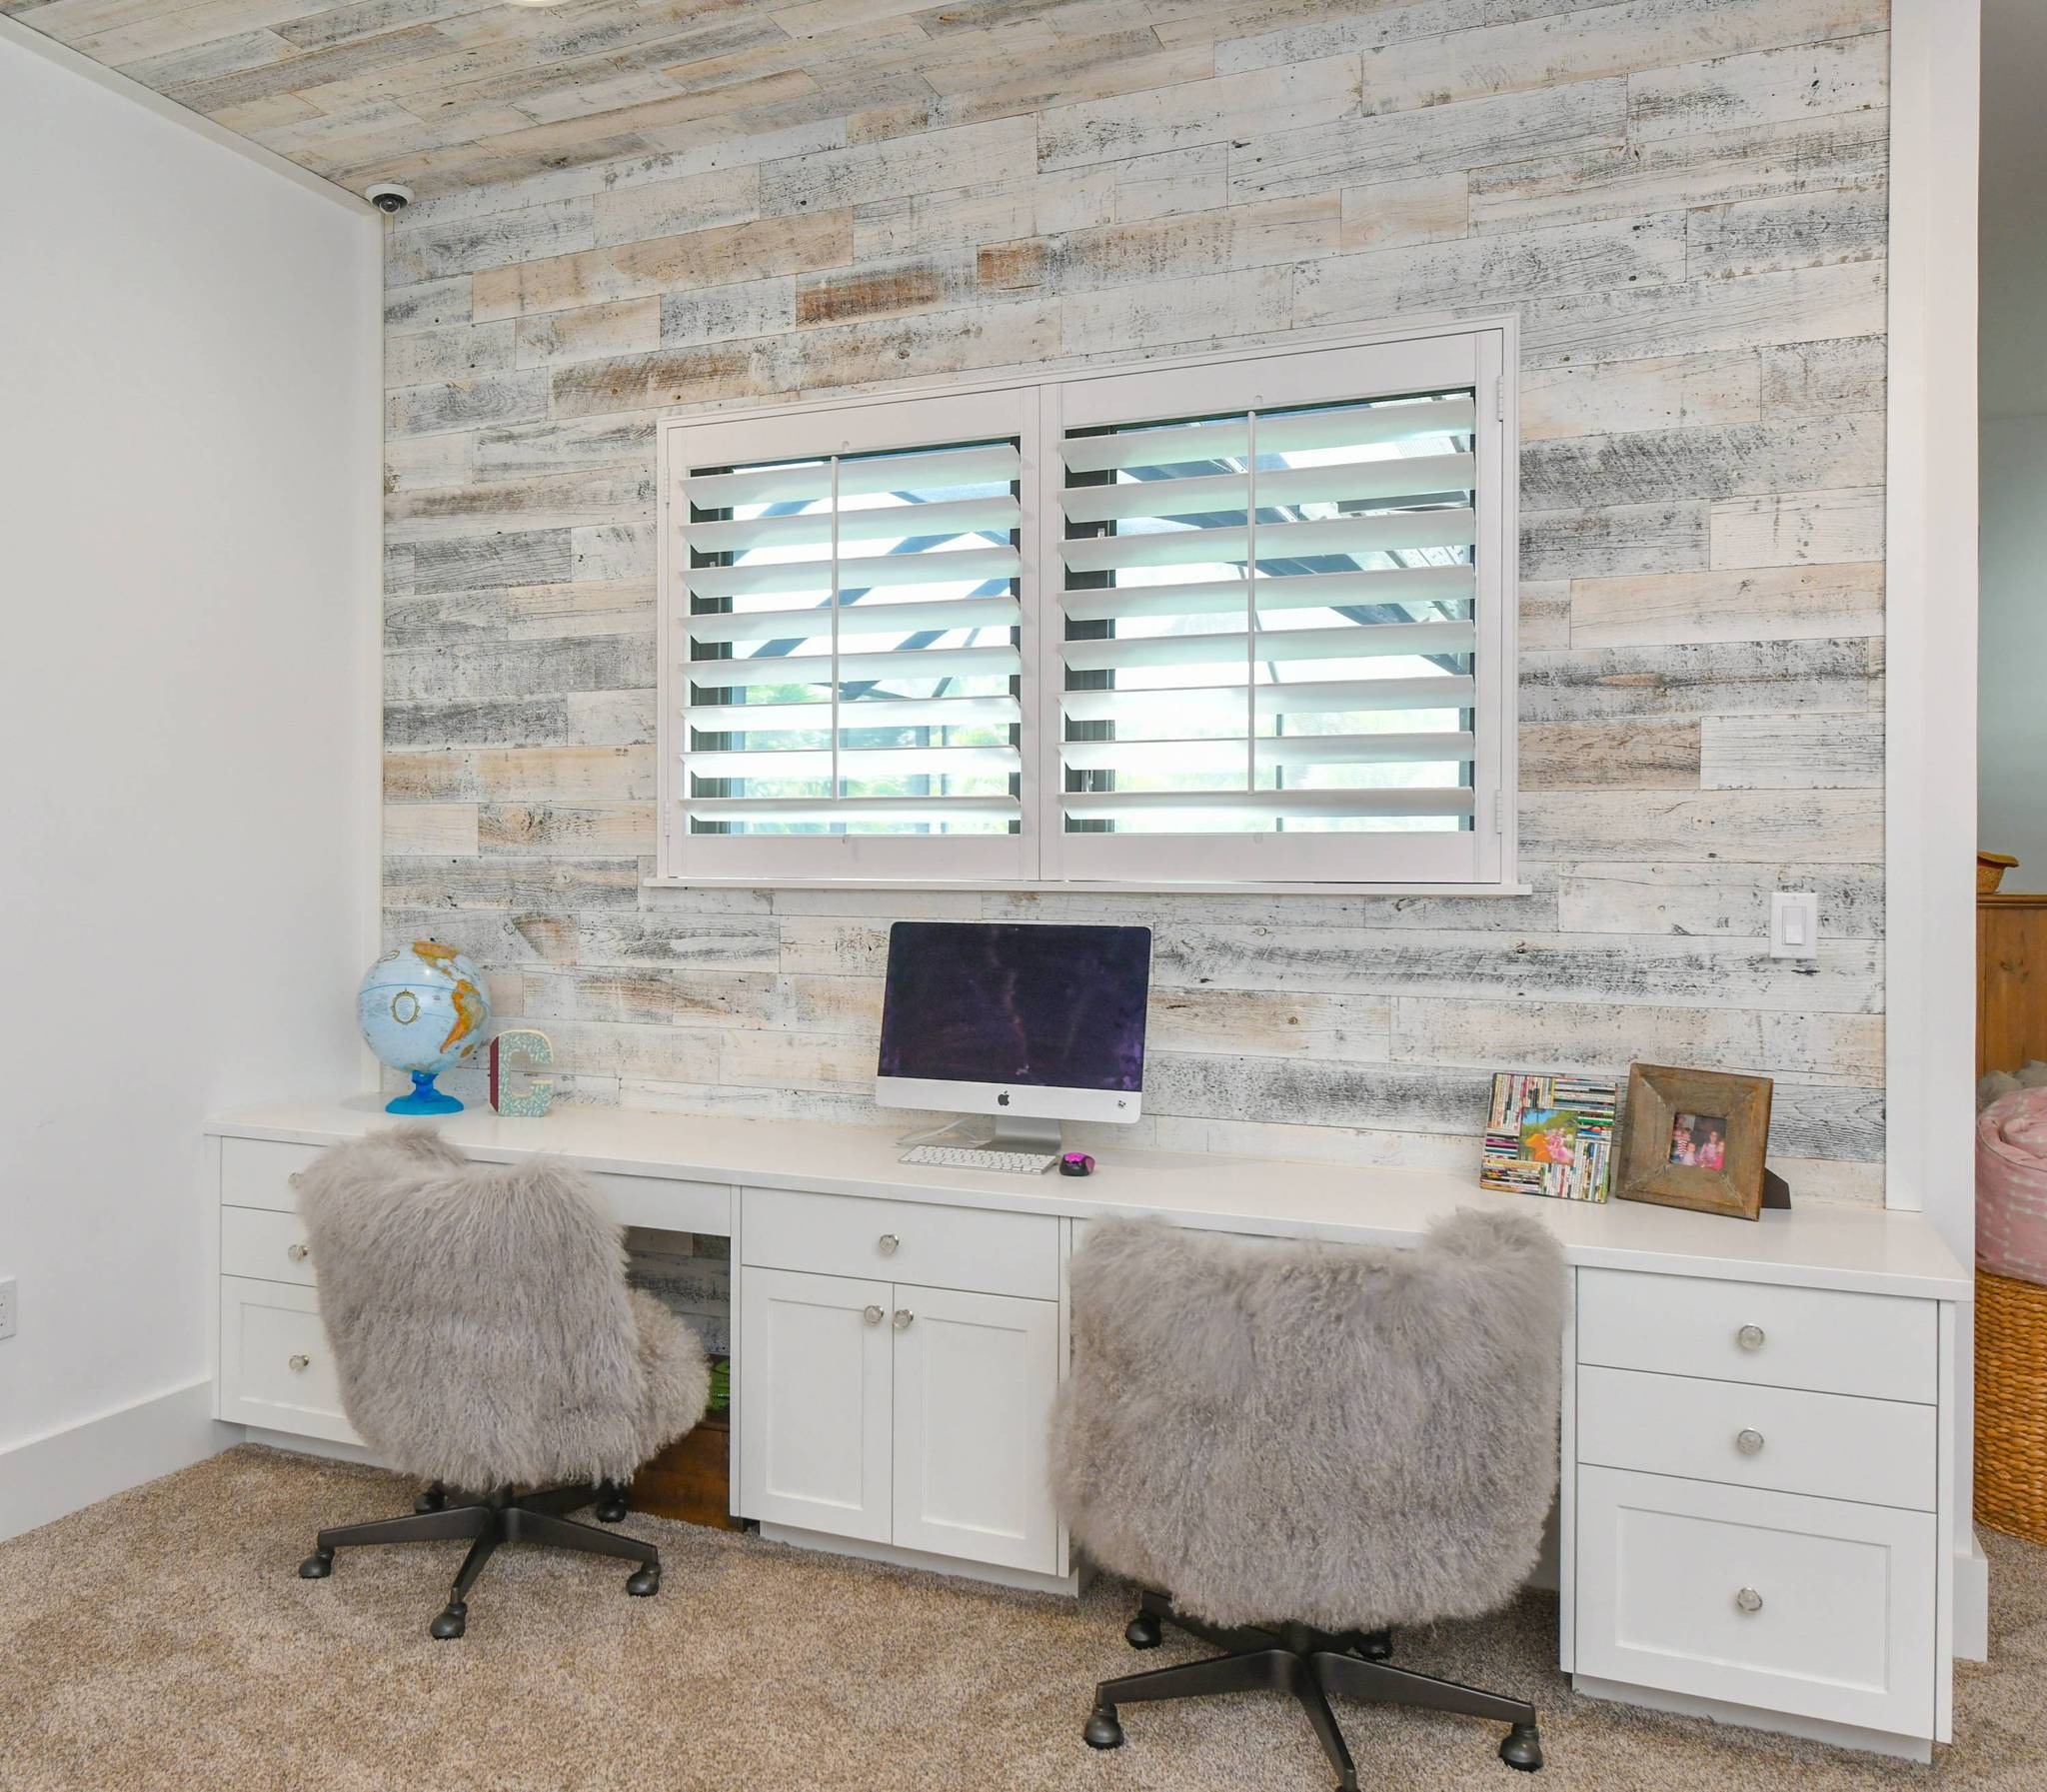 Home office concept by Trademark Interiors that uses a large Stikwood peel and stick reclaimed wood plank wall as the focus of the room.